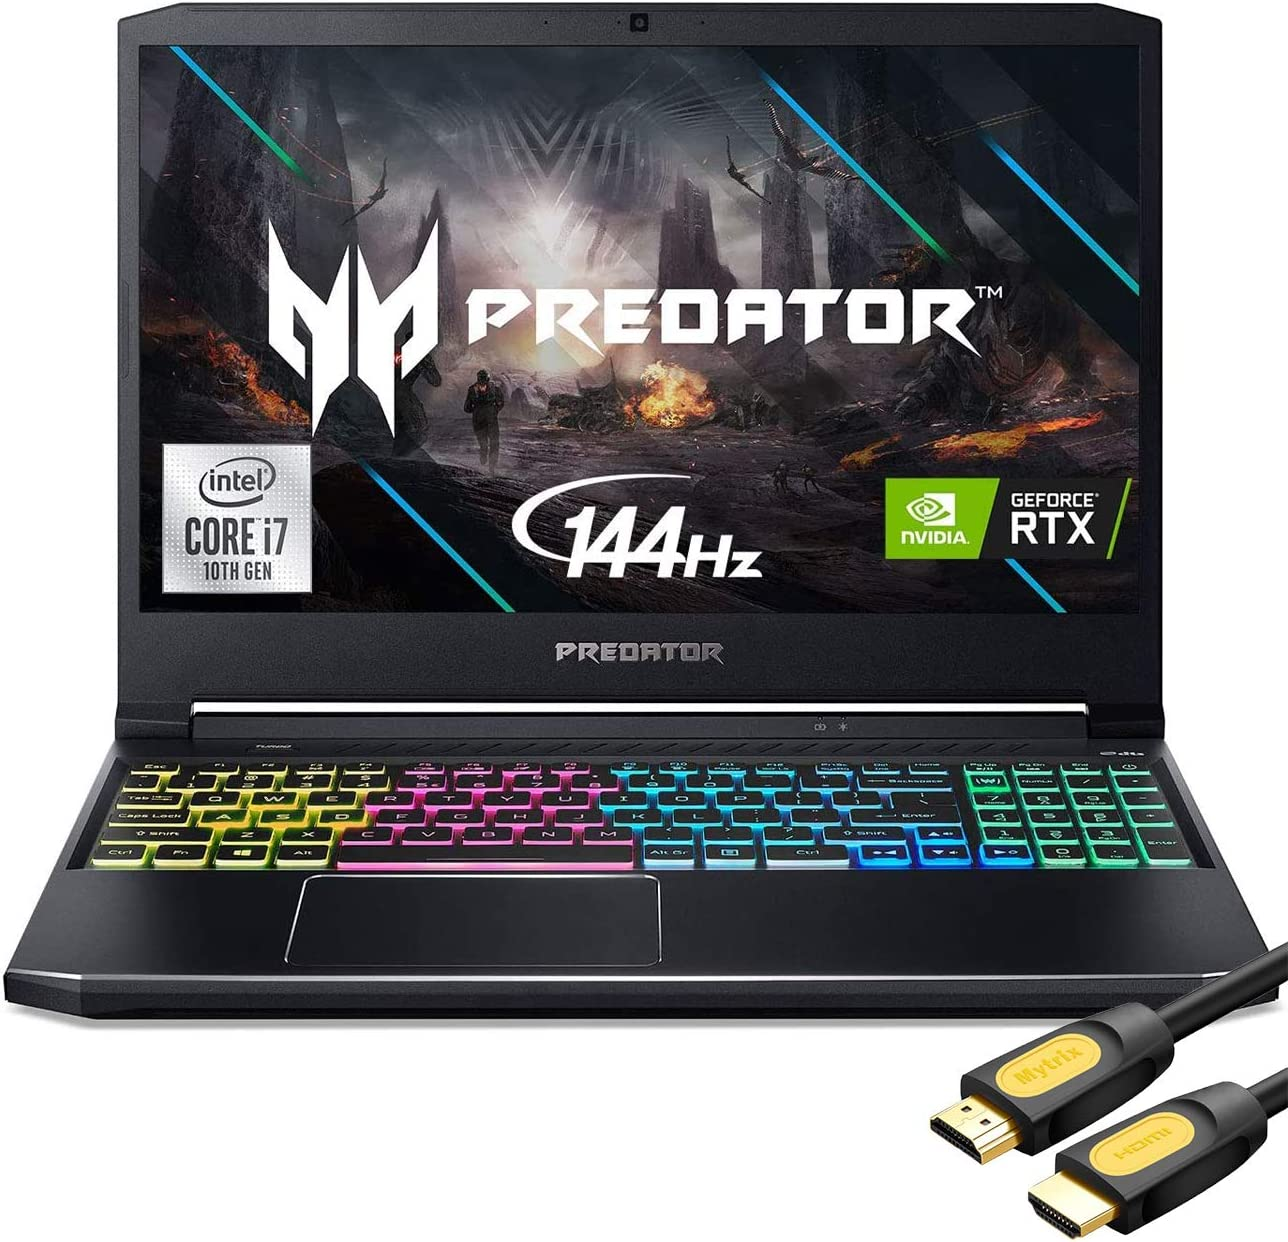 "Acer Predator Helios 300 144Hz Gaming Laptop, 15.6"" 3ms IPS FHD, RTX 2060 OC, i7-10750H 6-Cores up to 5.00 GHz, 32GB RAM, 1TB SSD, Killer Network, RGB KB, WiFi 6, Mytrix HDMI Cable, Win 10"